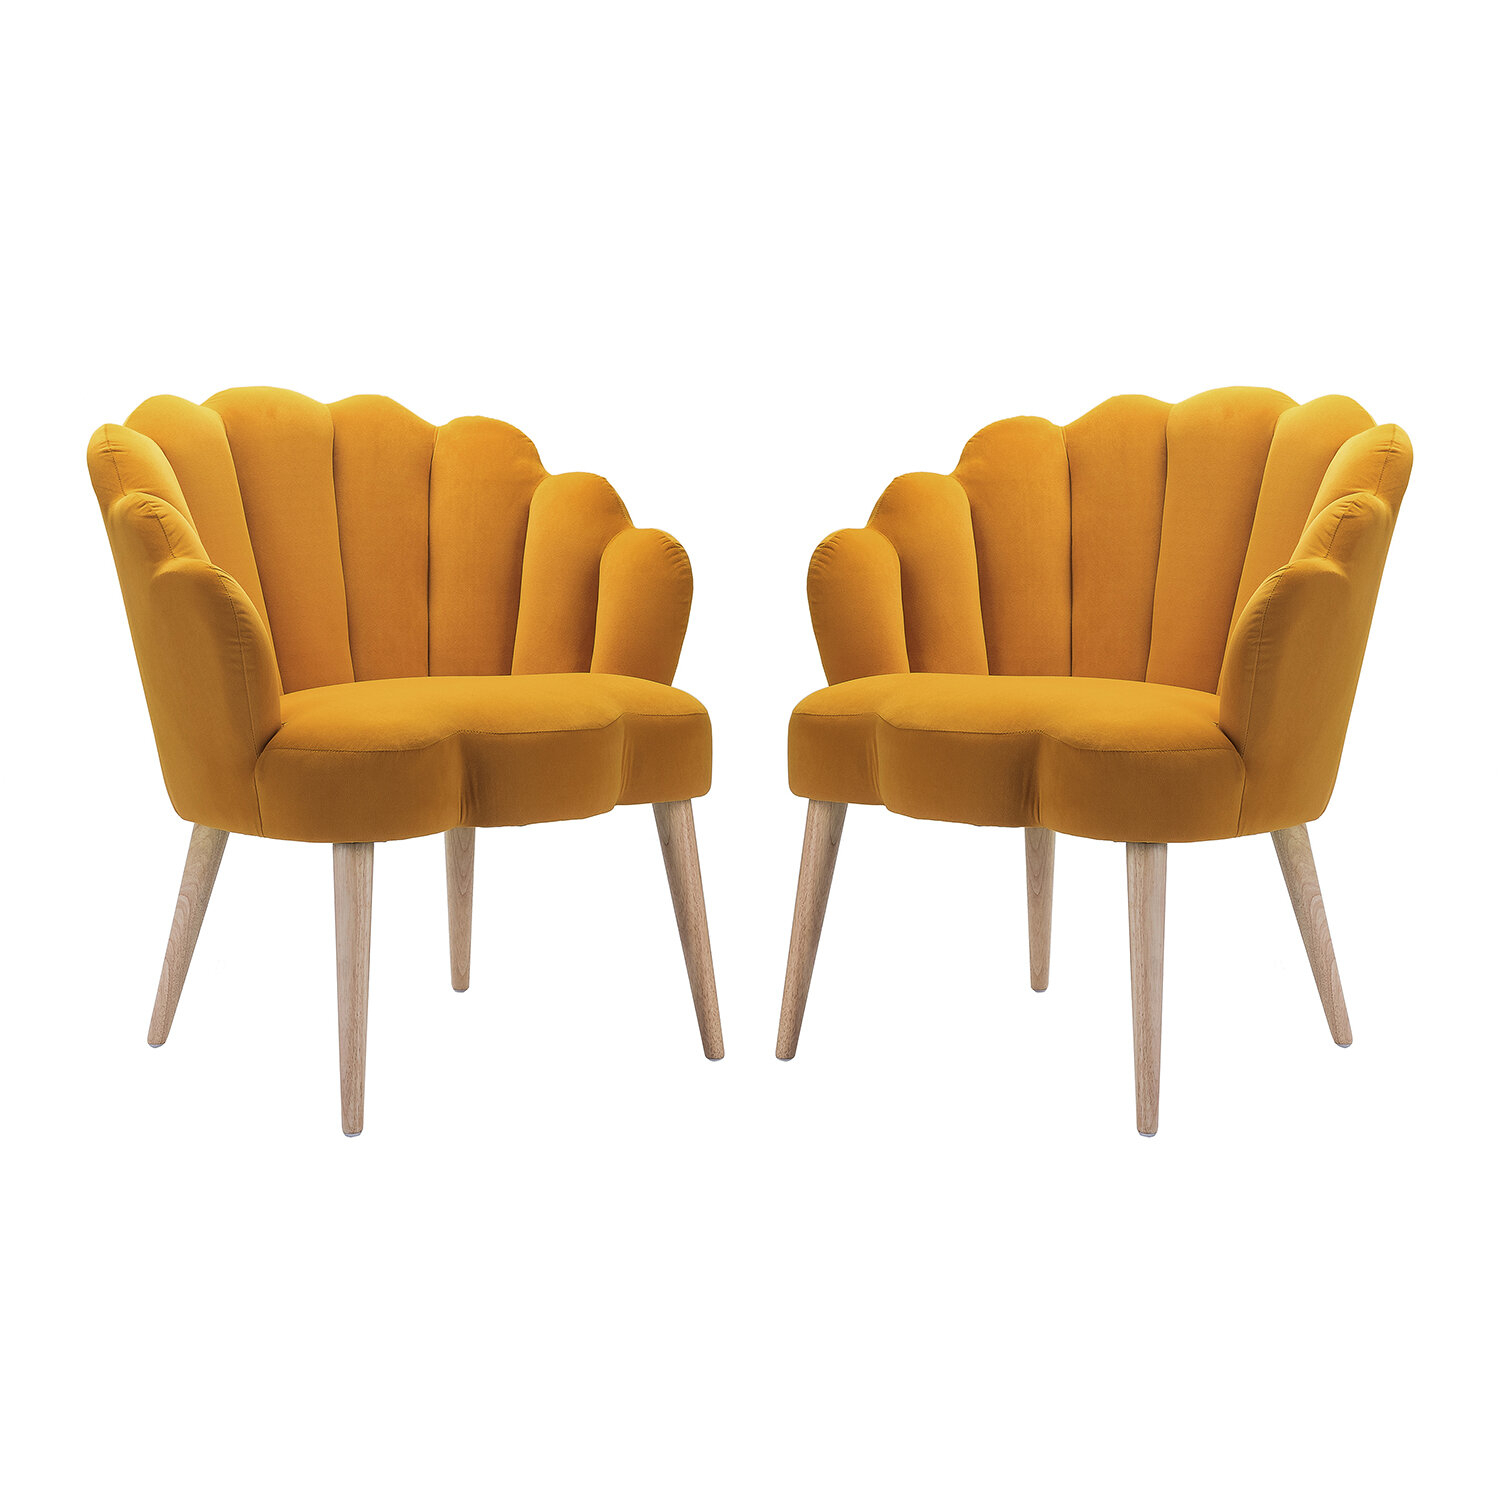 Barrel Yellow Accent Chairs You'Ll Love In 2021 | Wayfair In Alwillie Tufted Back Barrel Chairs (View 9 of 15)